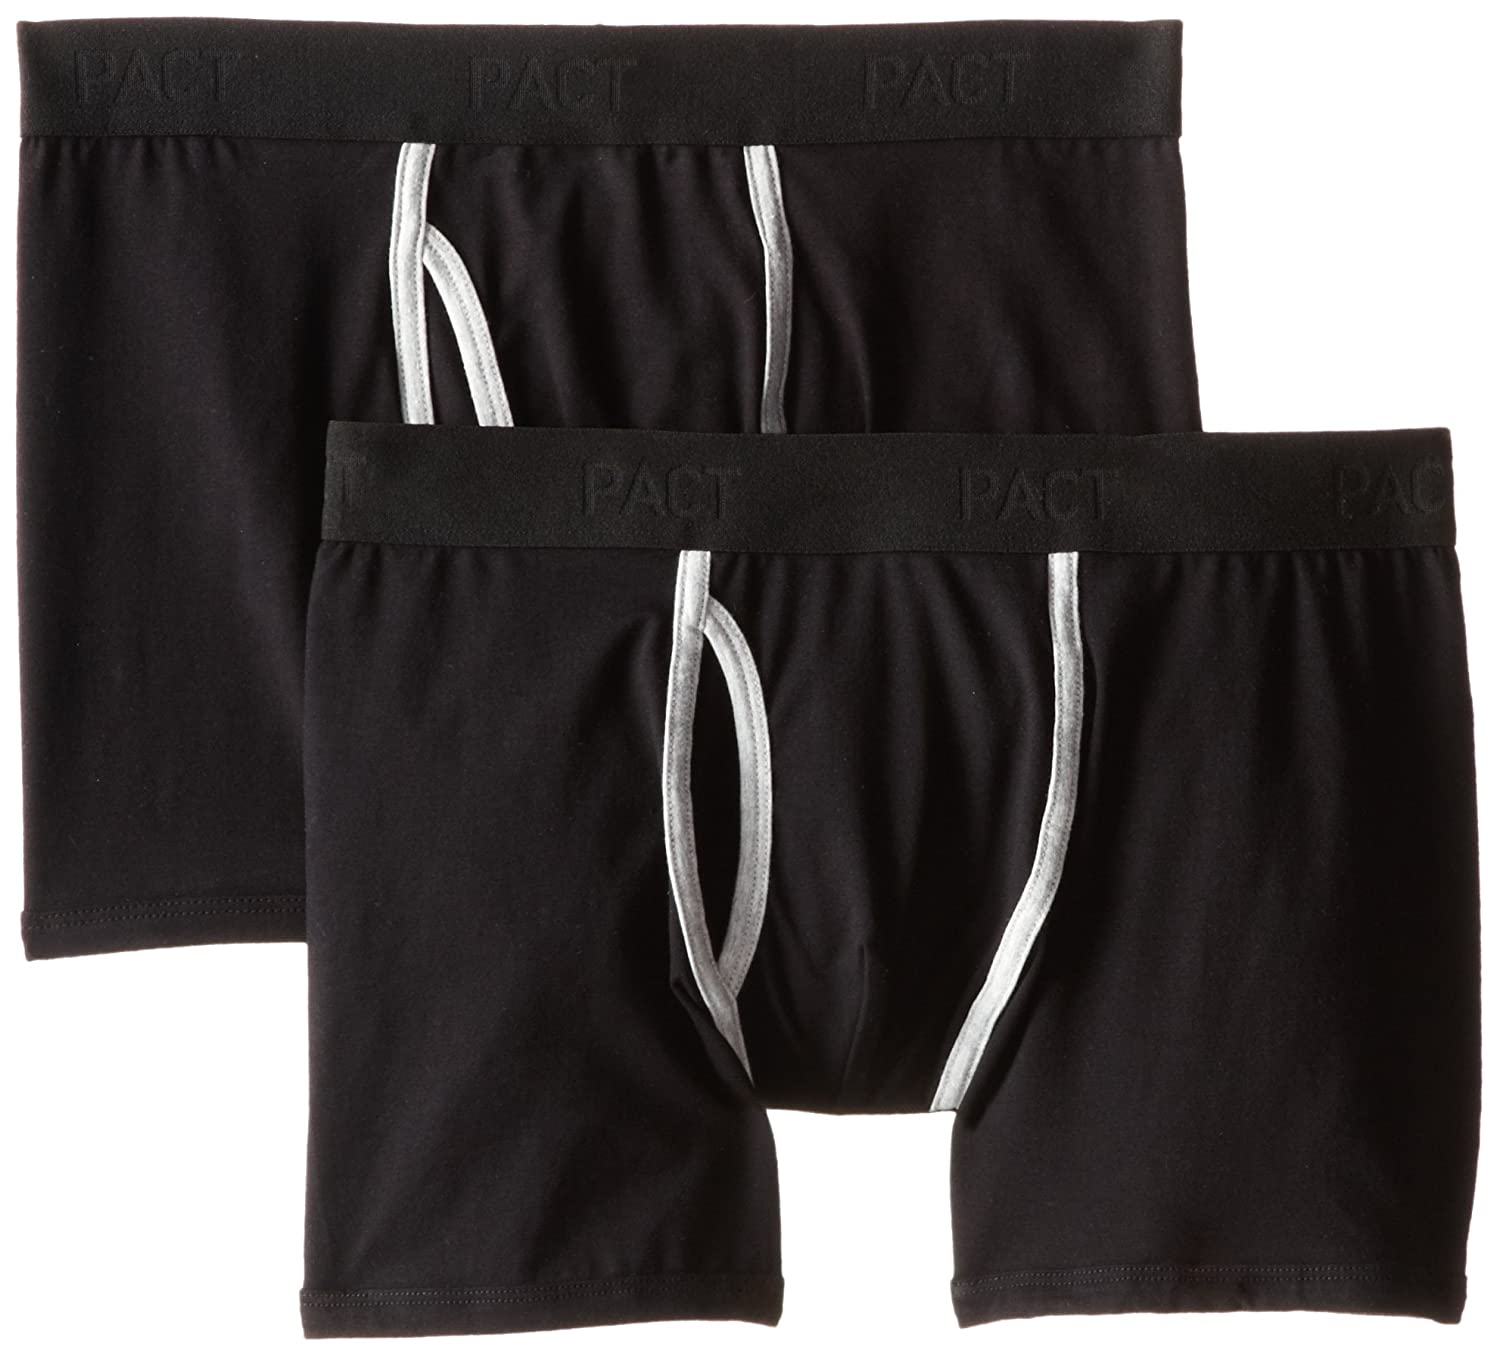 82fc50e850d1 Pact\'s men's underwear offers sustainable and ethical options for men  looking for affordable, super soft, high quality boxers, trunks, and briefs  without ...